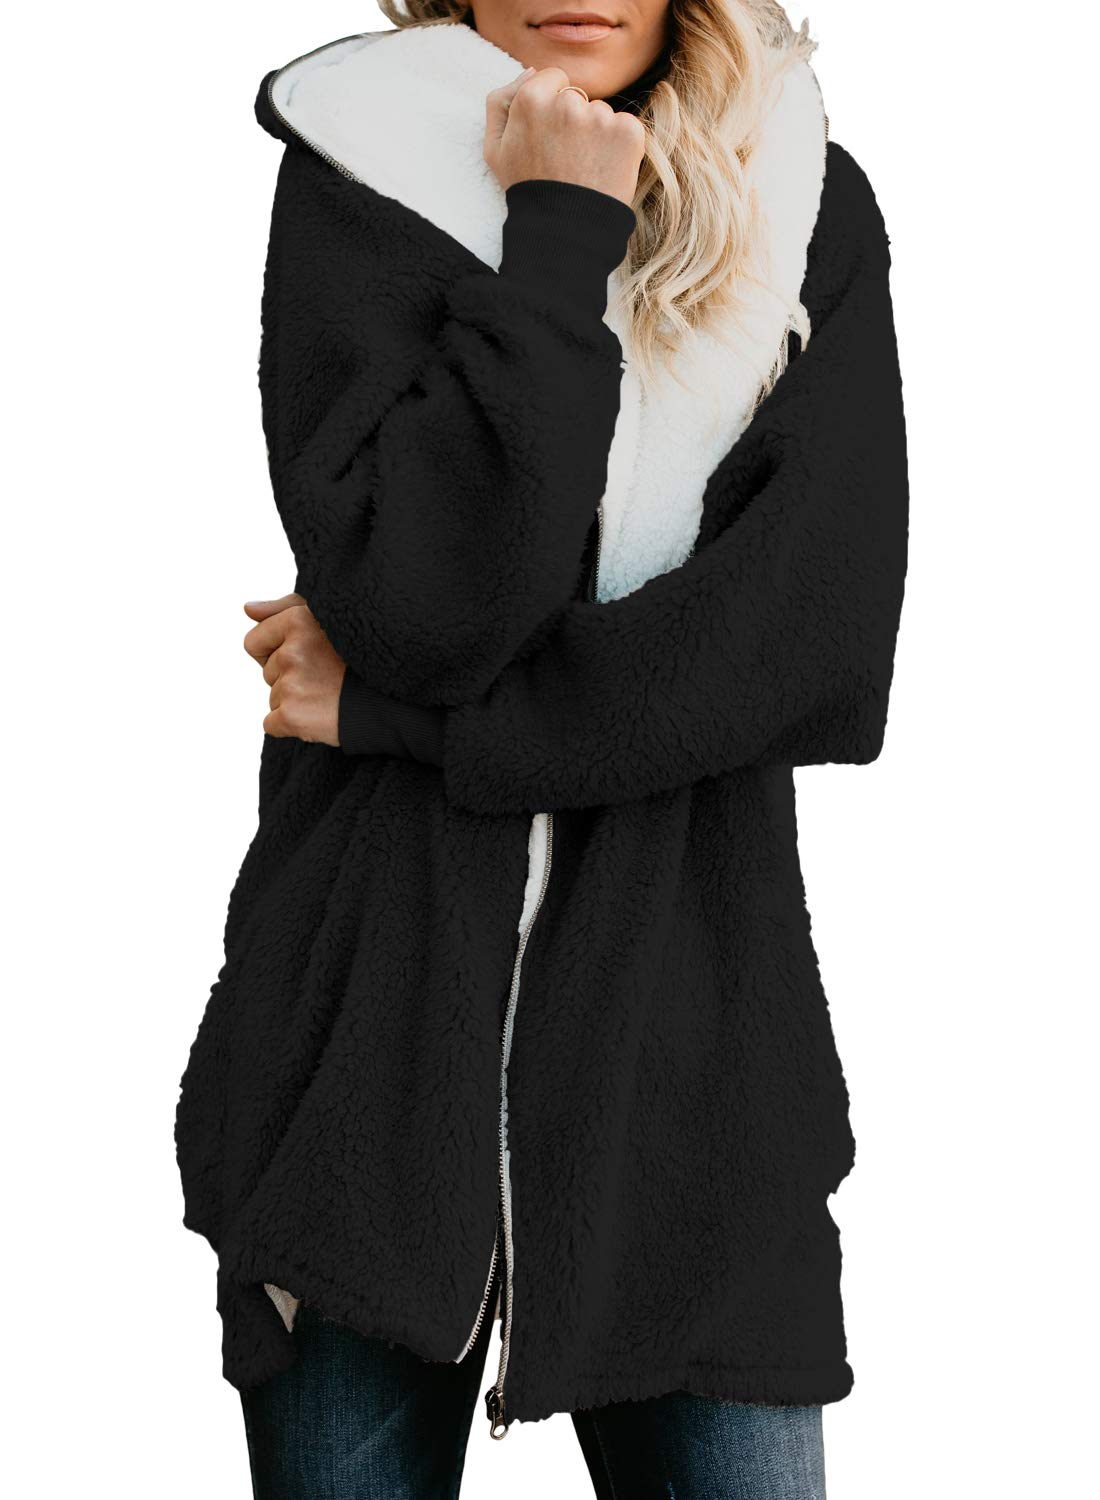 Dokotoo Womens Plus Size Casual Fleece Zip Down Long Sleeve Cardigans Open Front Hooded Fluffy Coat Jackets Outwear with Pockets Black X-Large